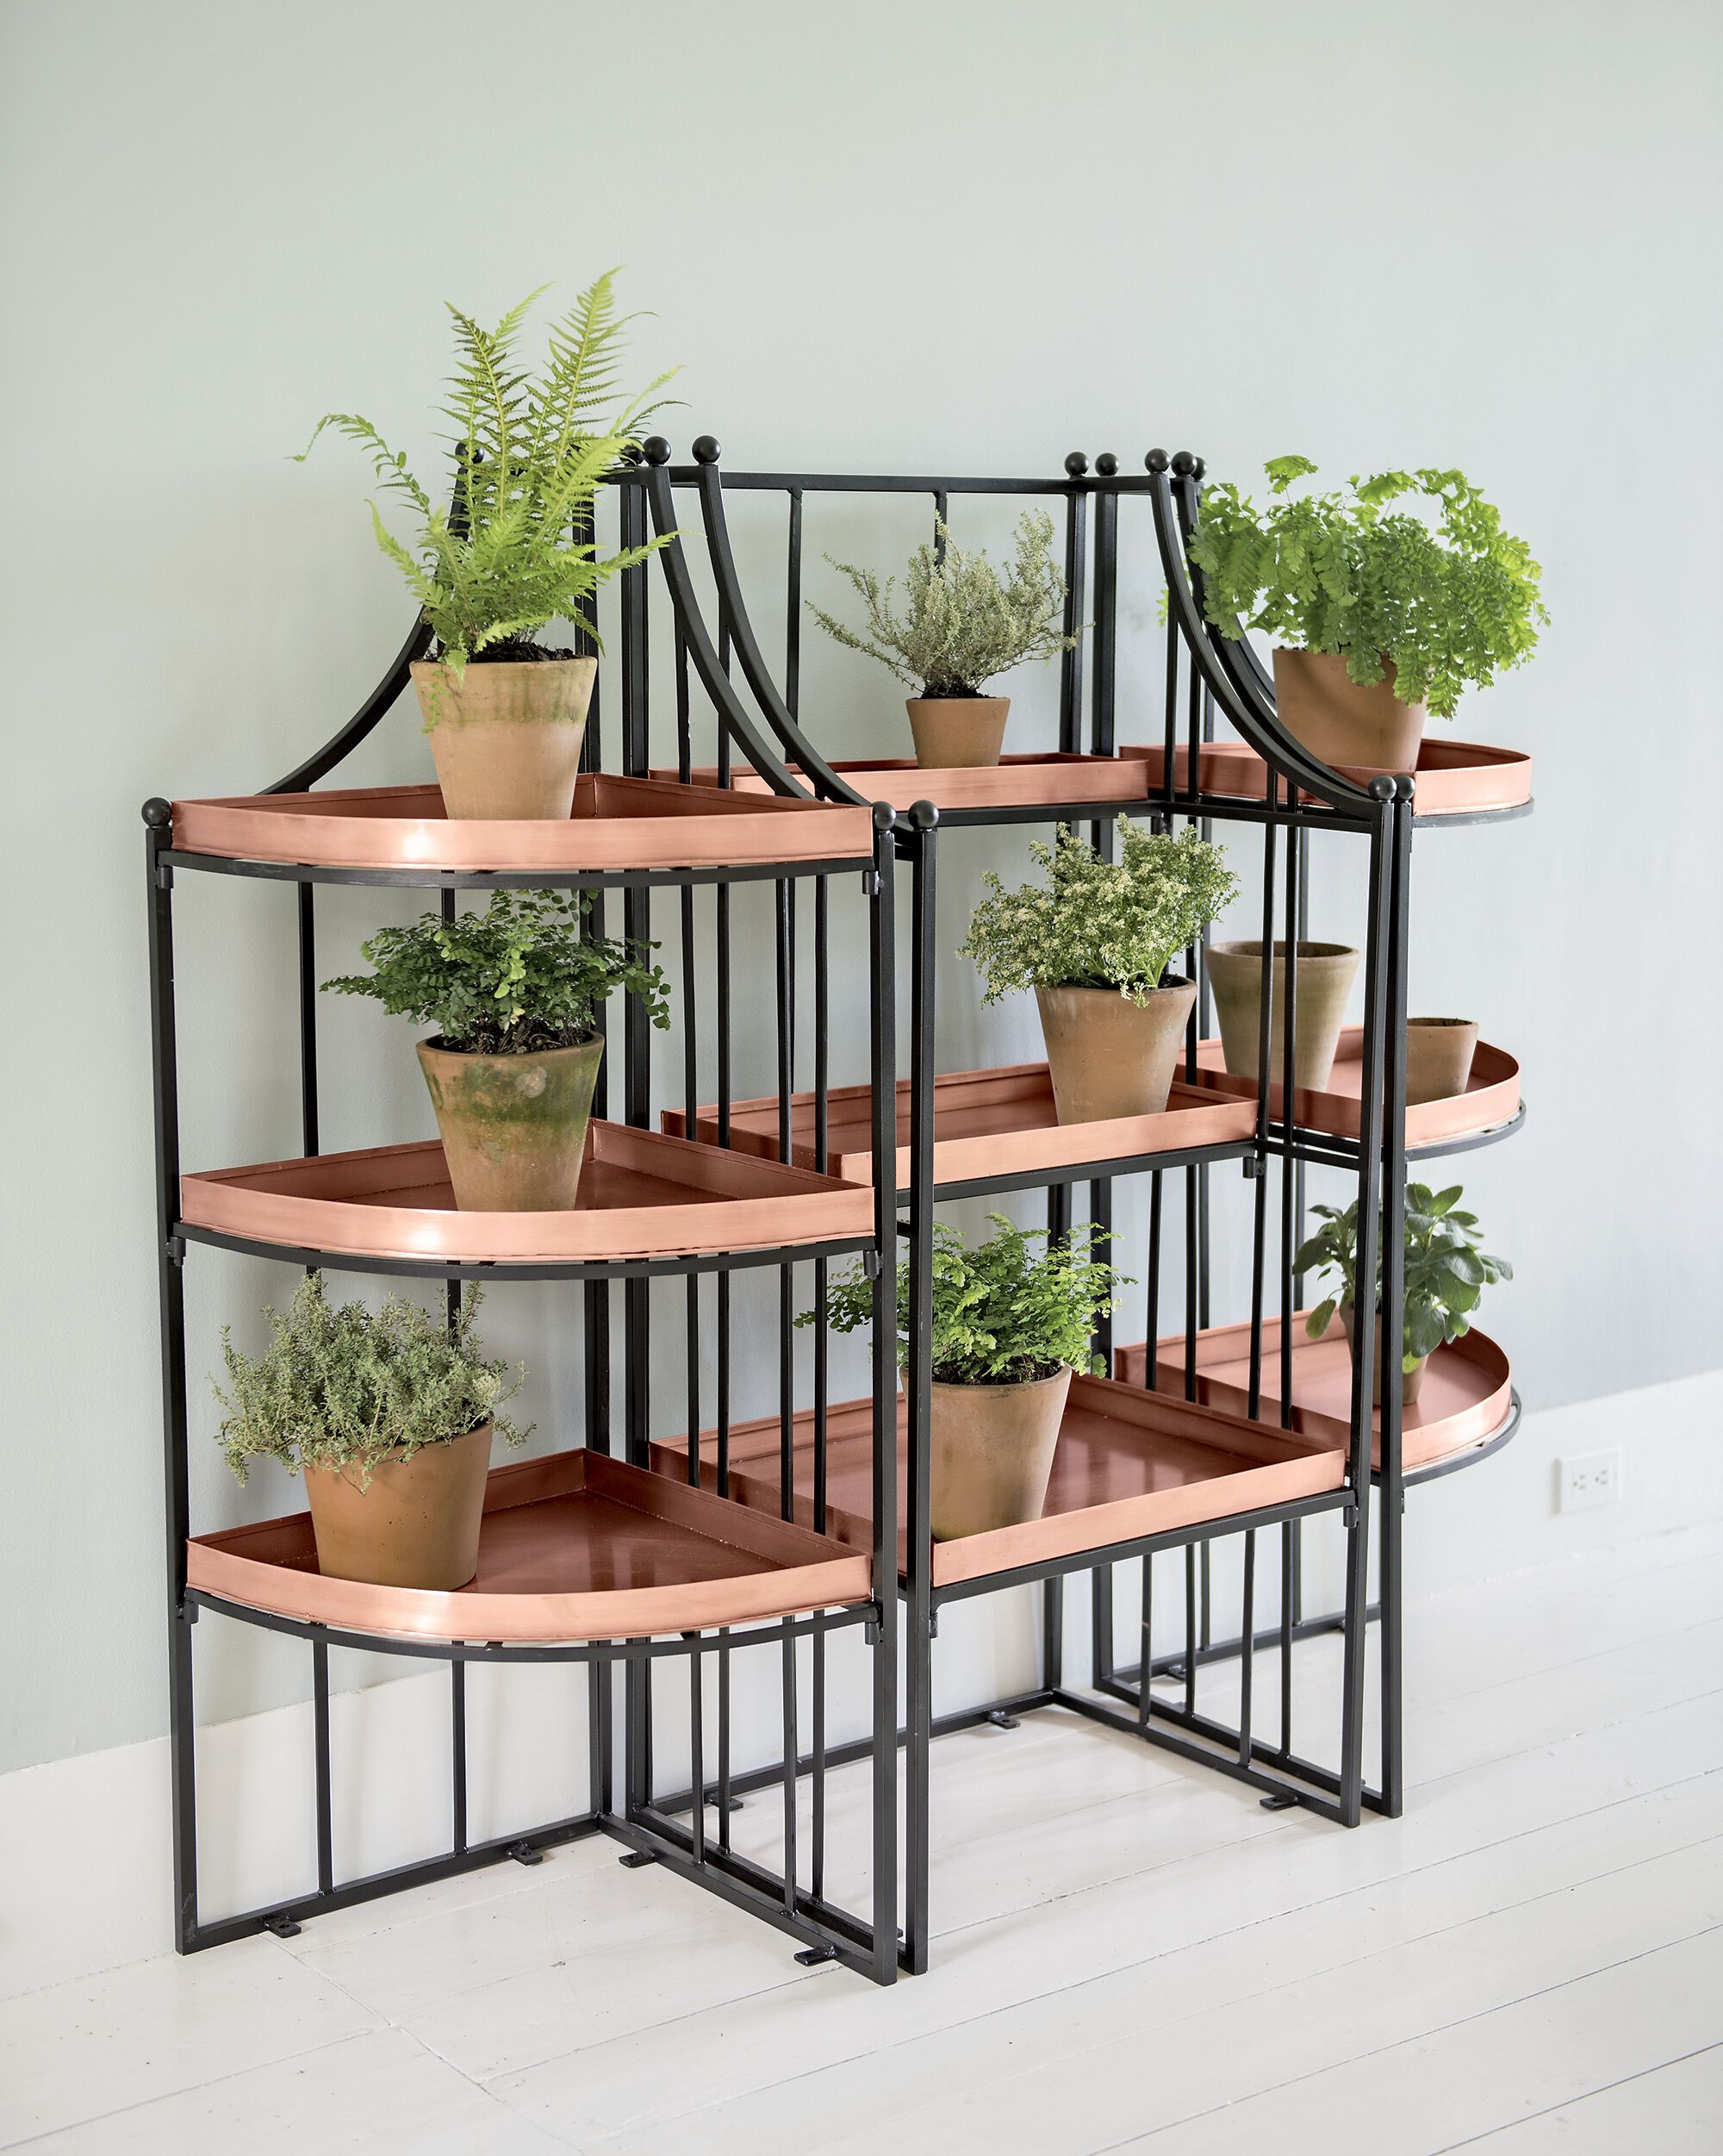 Nice Garden Stands For Plants #8: Essex Plant Stand Set With Trays